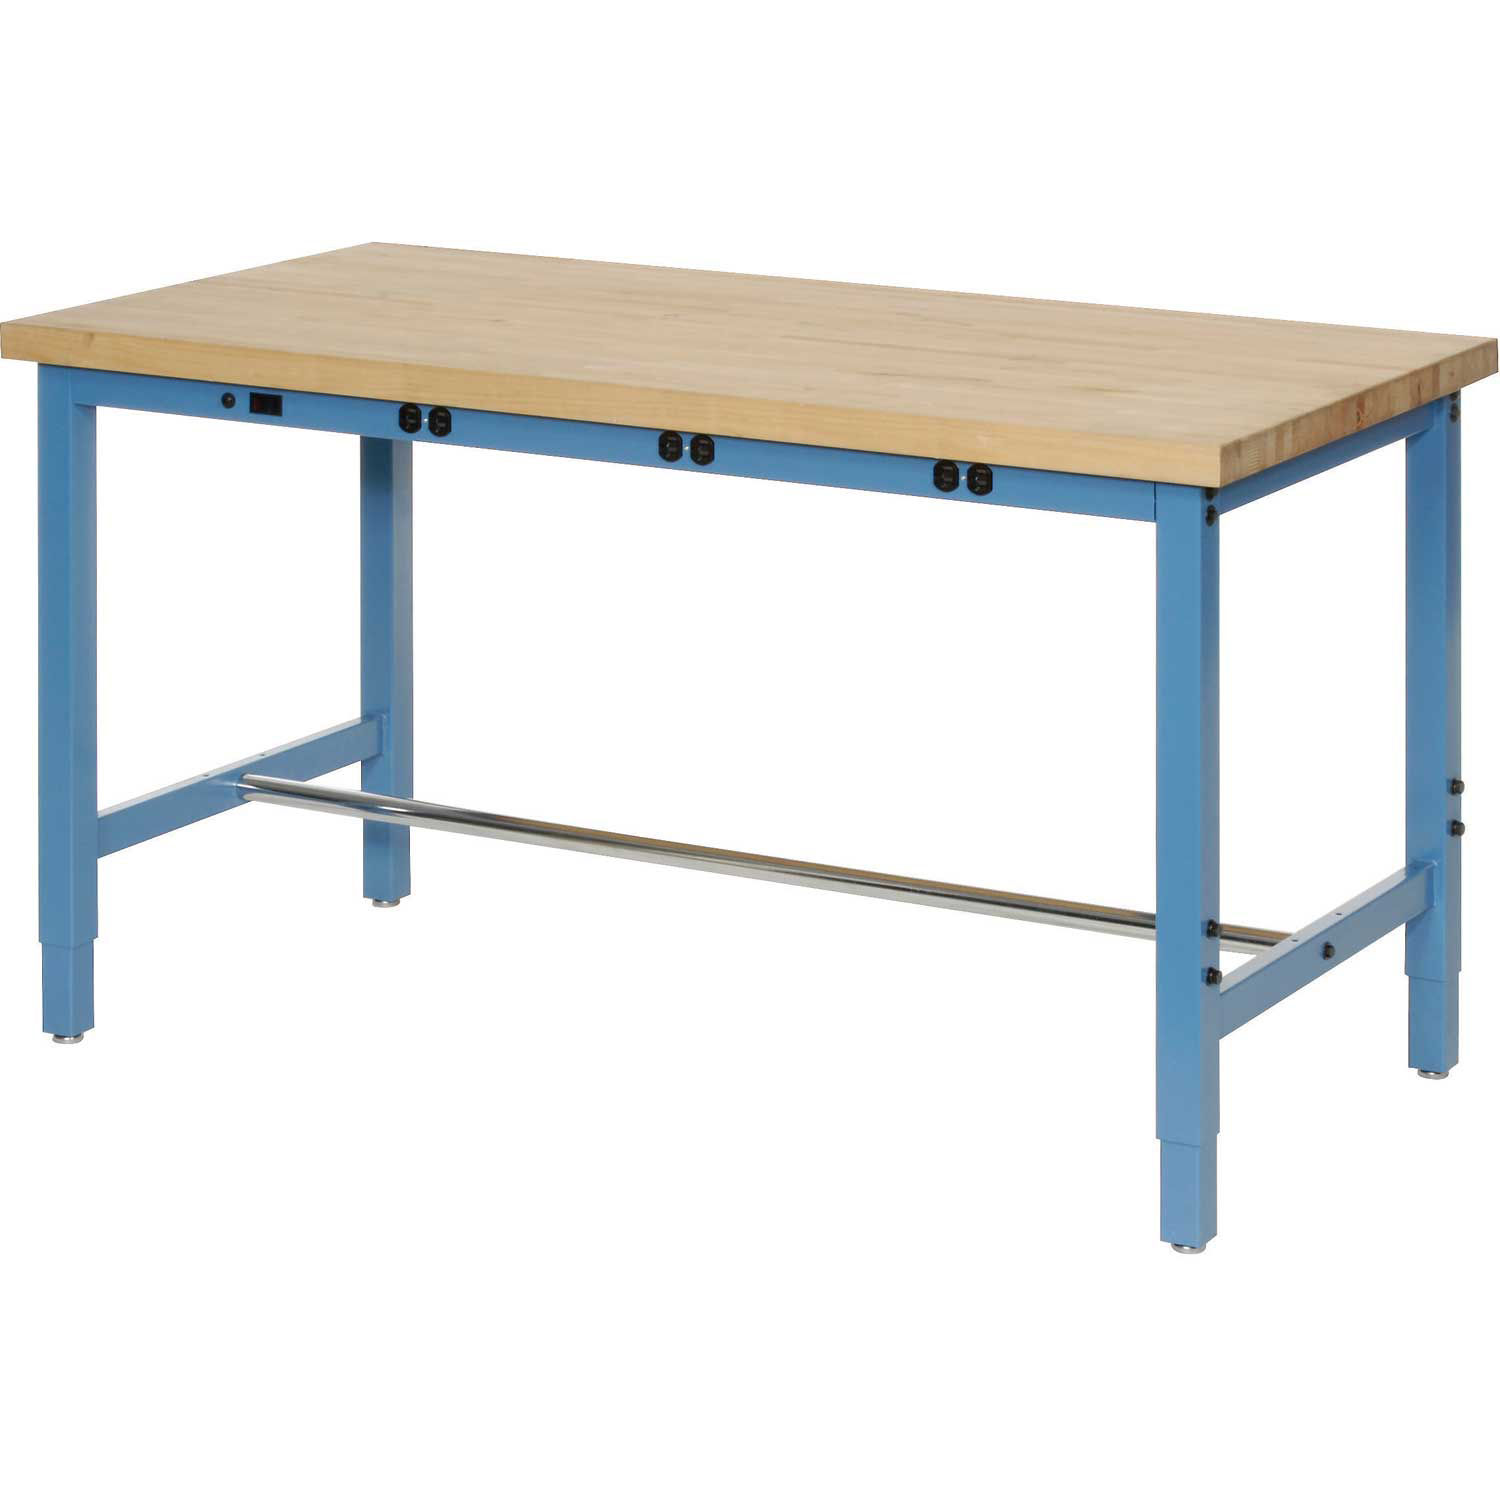 Butcher Block Workbench >> Details About Production Workbench With Power Apron Birch Butcher Block Square Edge Blue